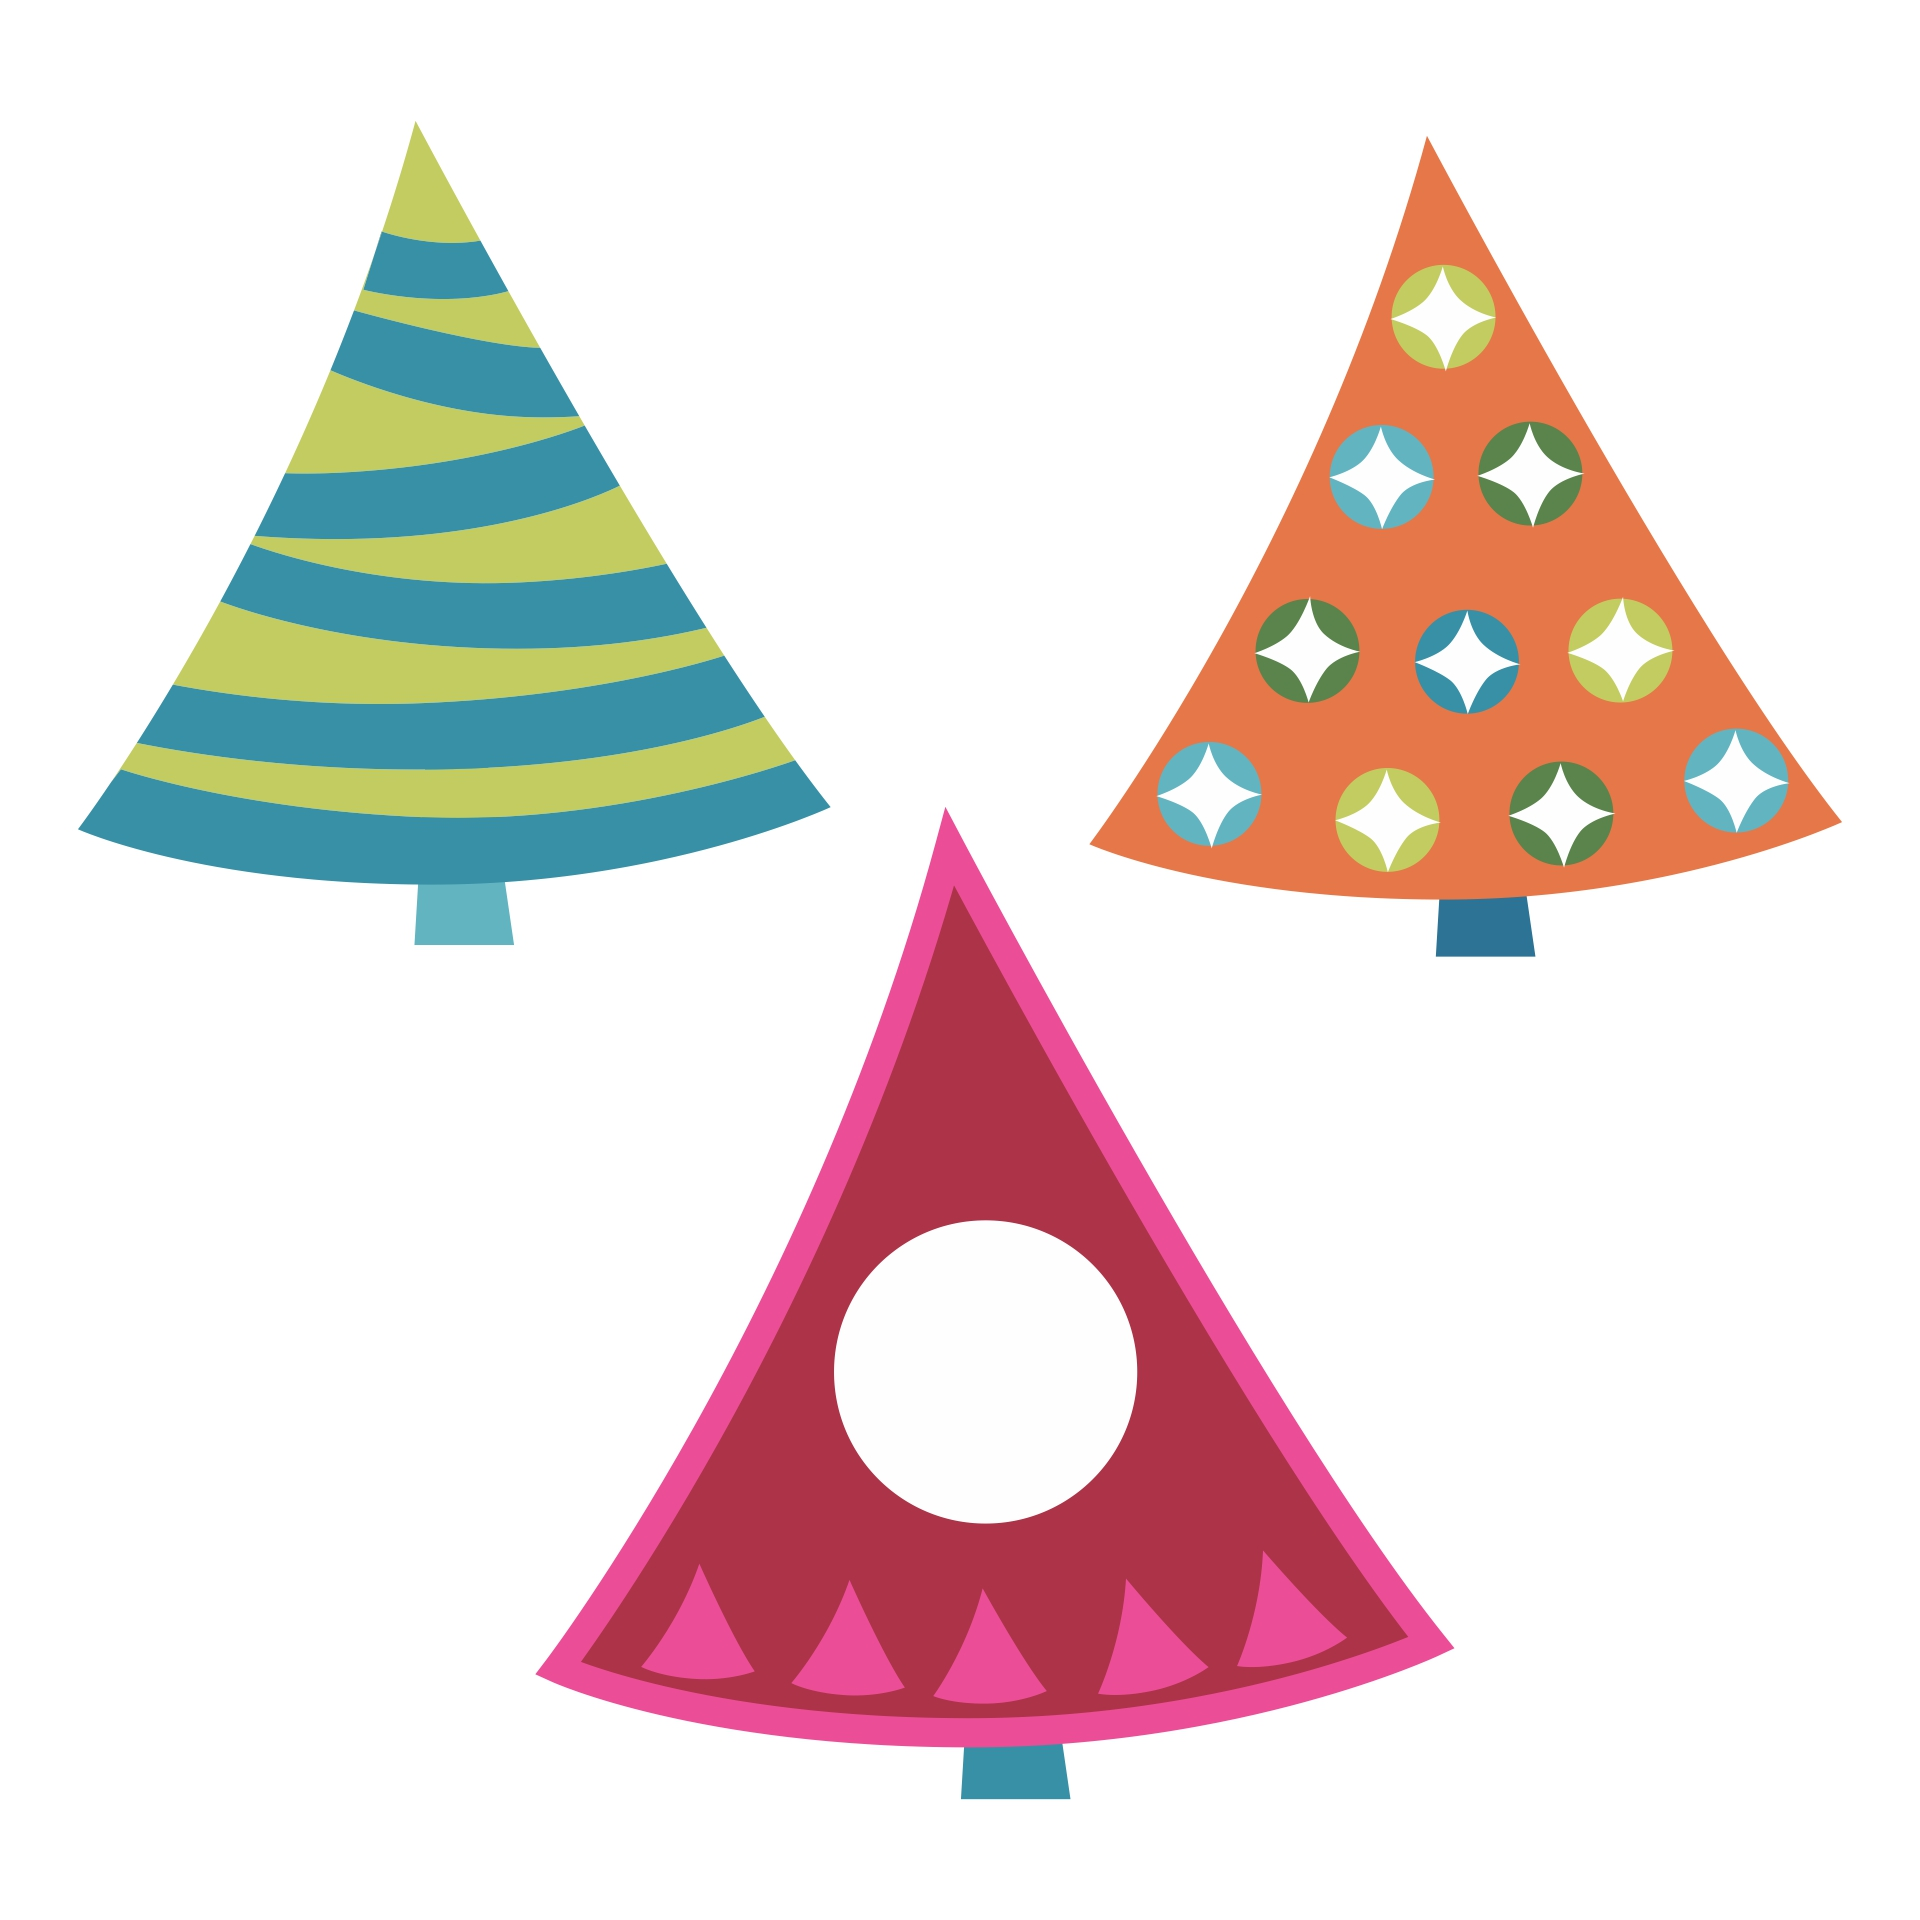 5 Images of Printable 3D Paper Christmas Trees